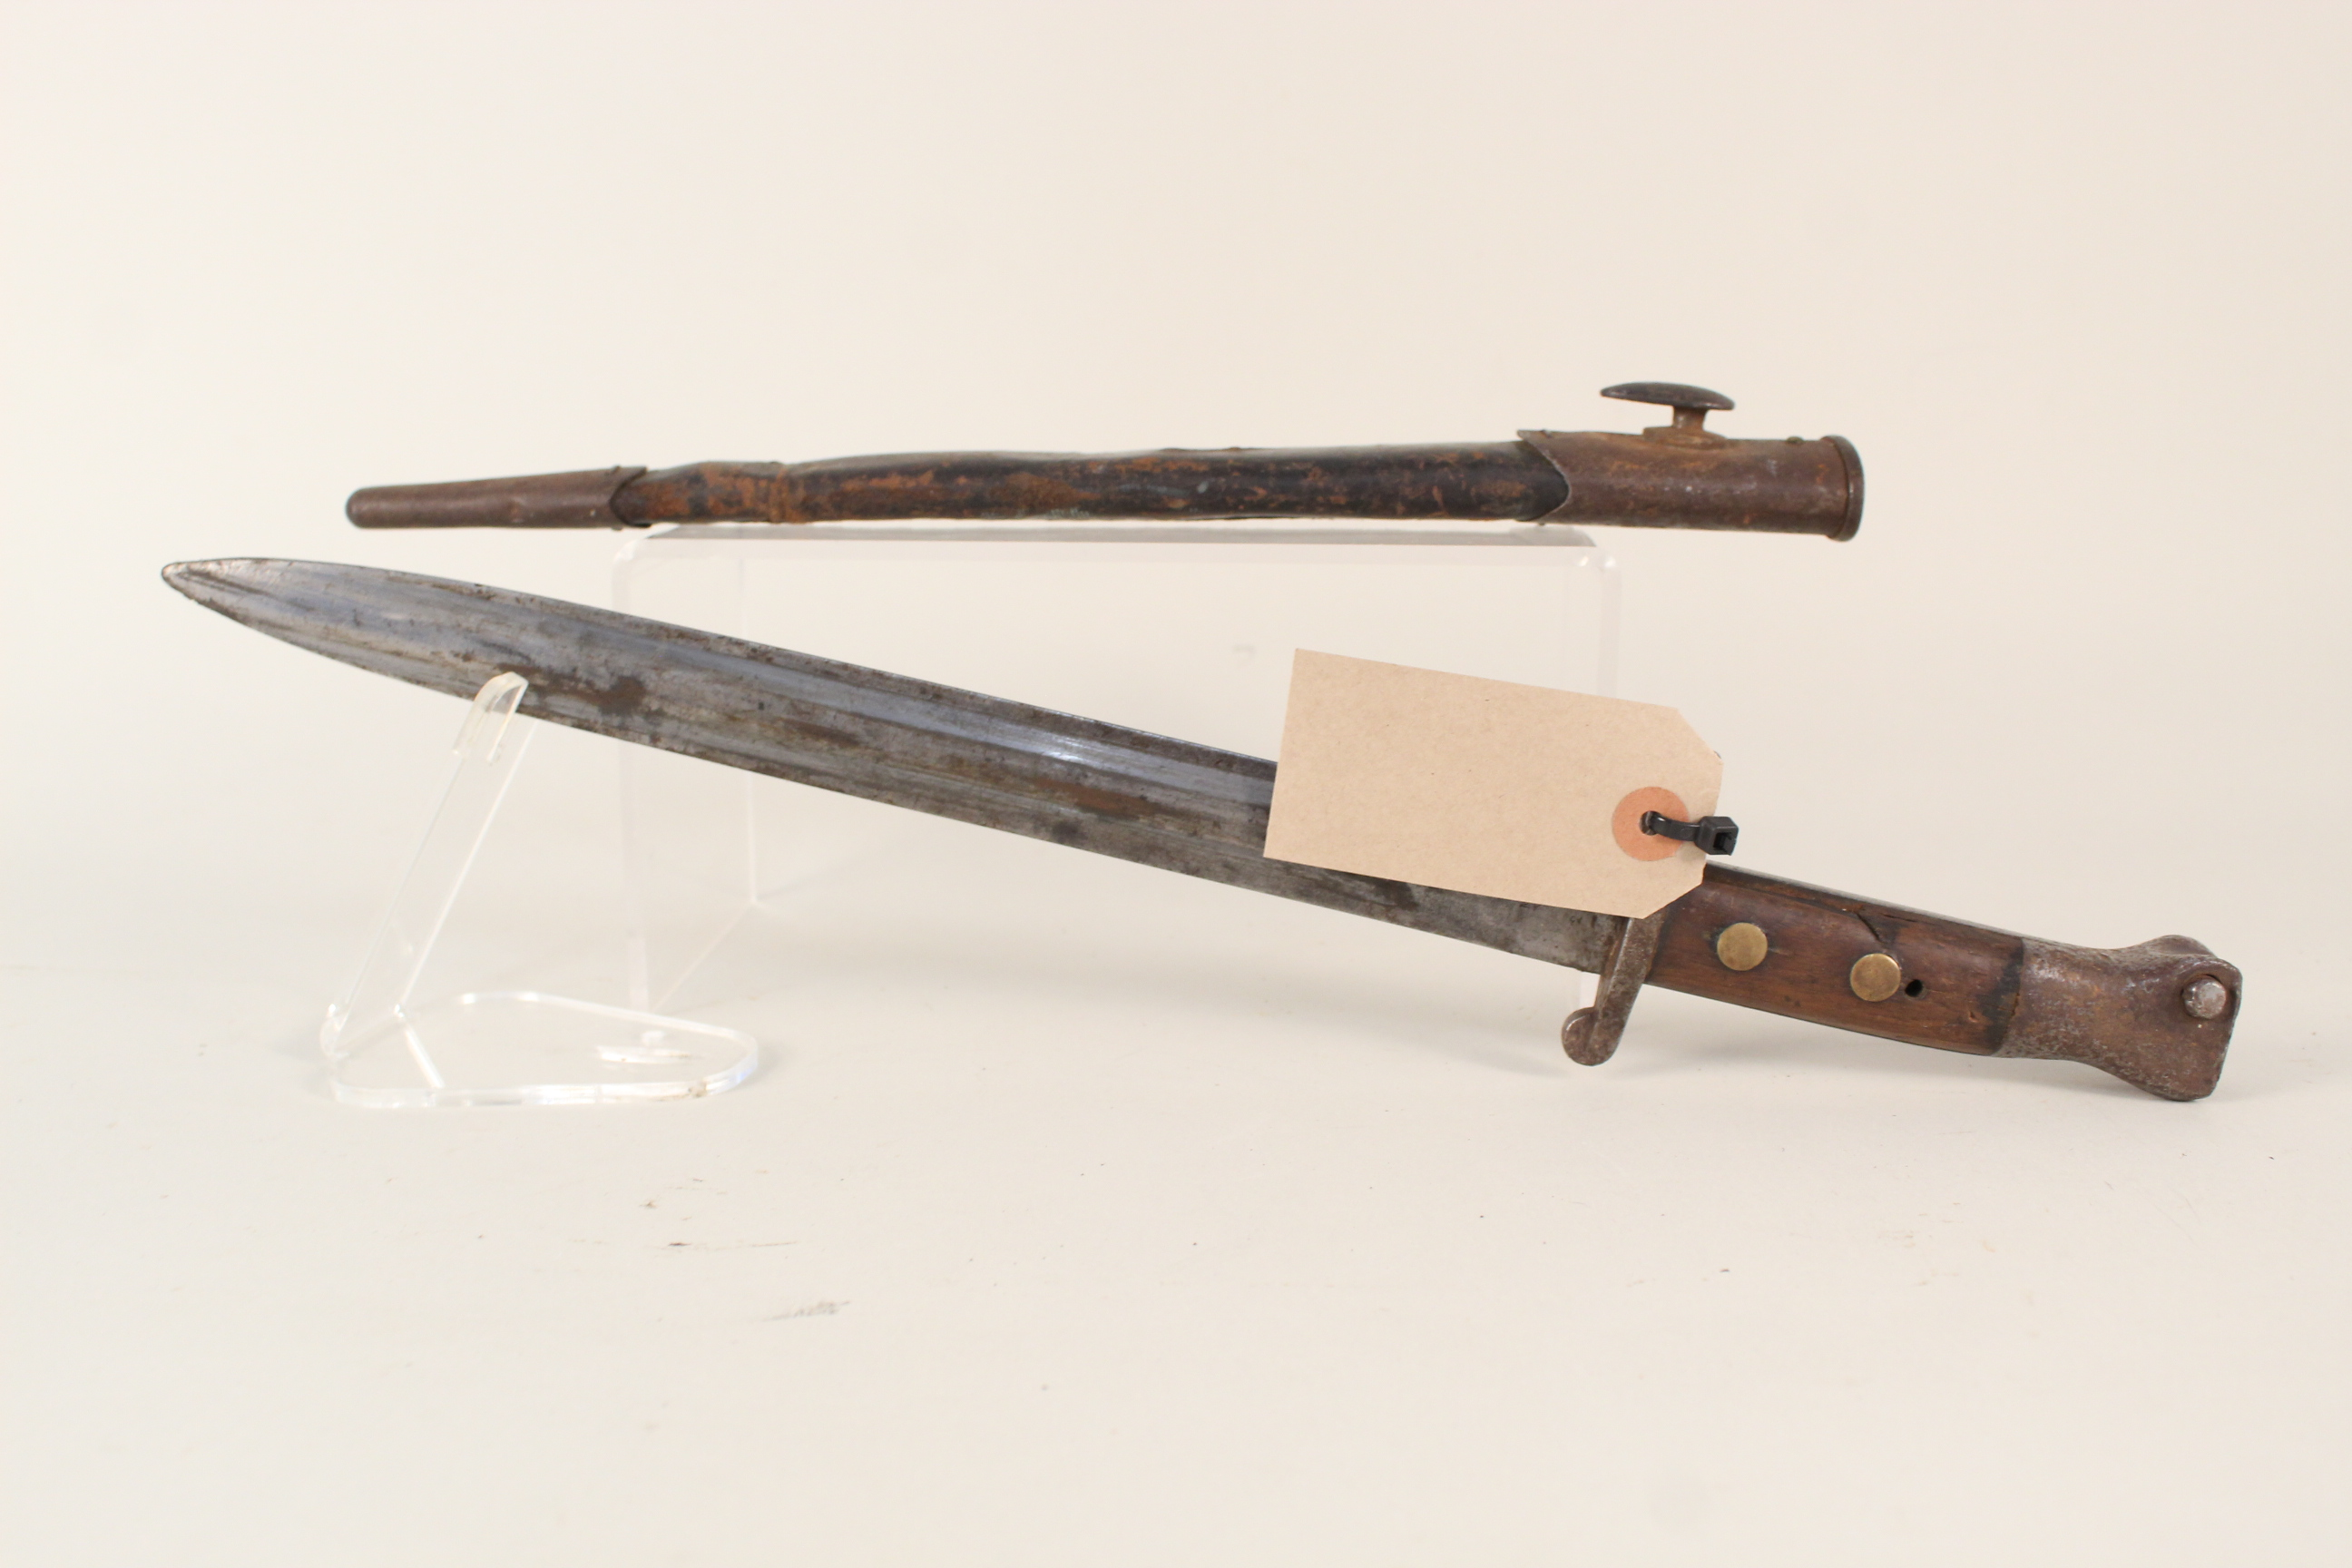 A British 1888 model bayonet (Mk I 2nd type) by Mole with scabbard (in overall worn condition) - Image 2 of 4